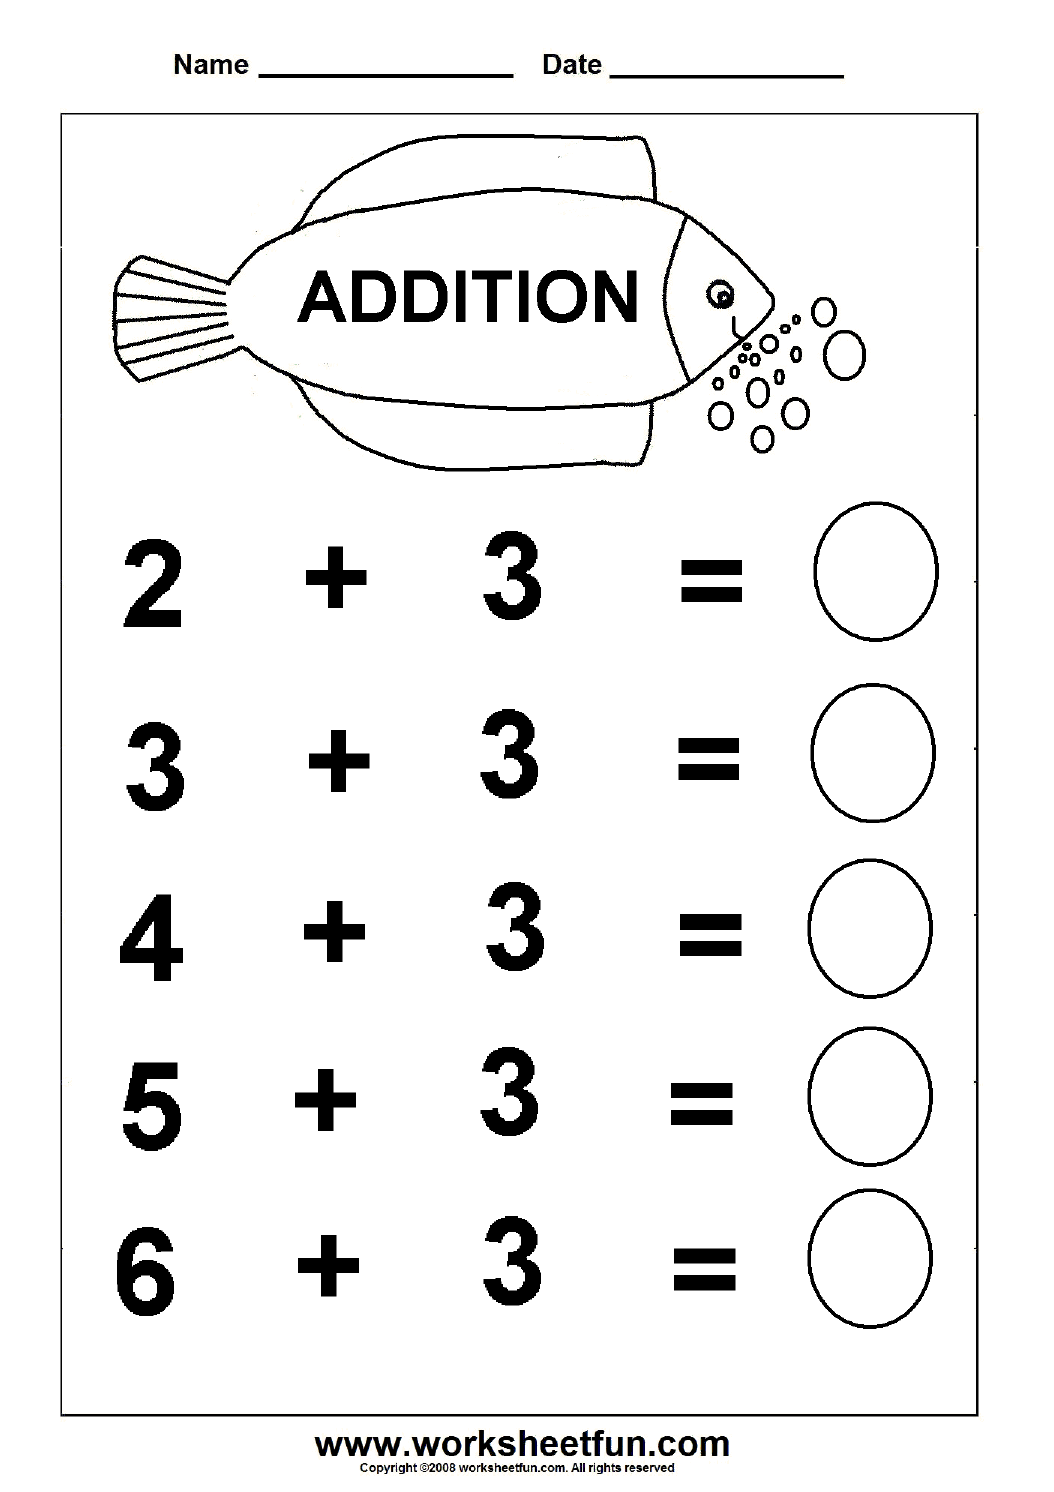 worksheet Free Printable Addition Worksheets beginner addition 6 kindergarten worksheets free first grade worksheets